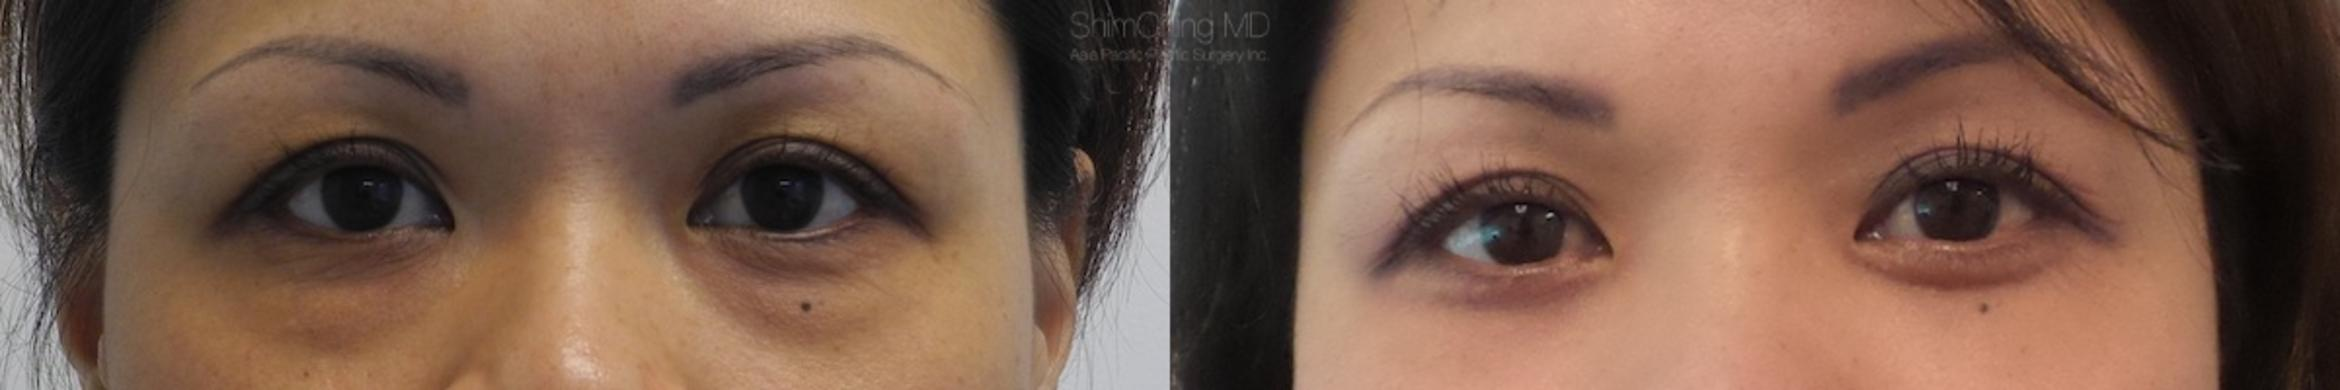 Homepage Featured Cases Case 165 Before & After View #1 | Honolulu, HI | Shim Ching, MD: Asia Pacific Plastic Surgery